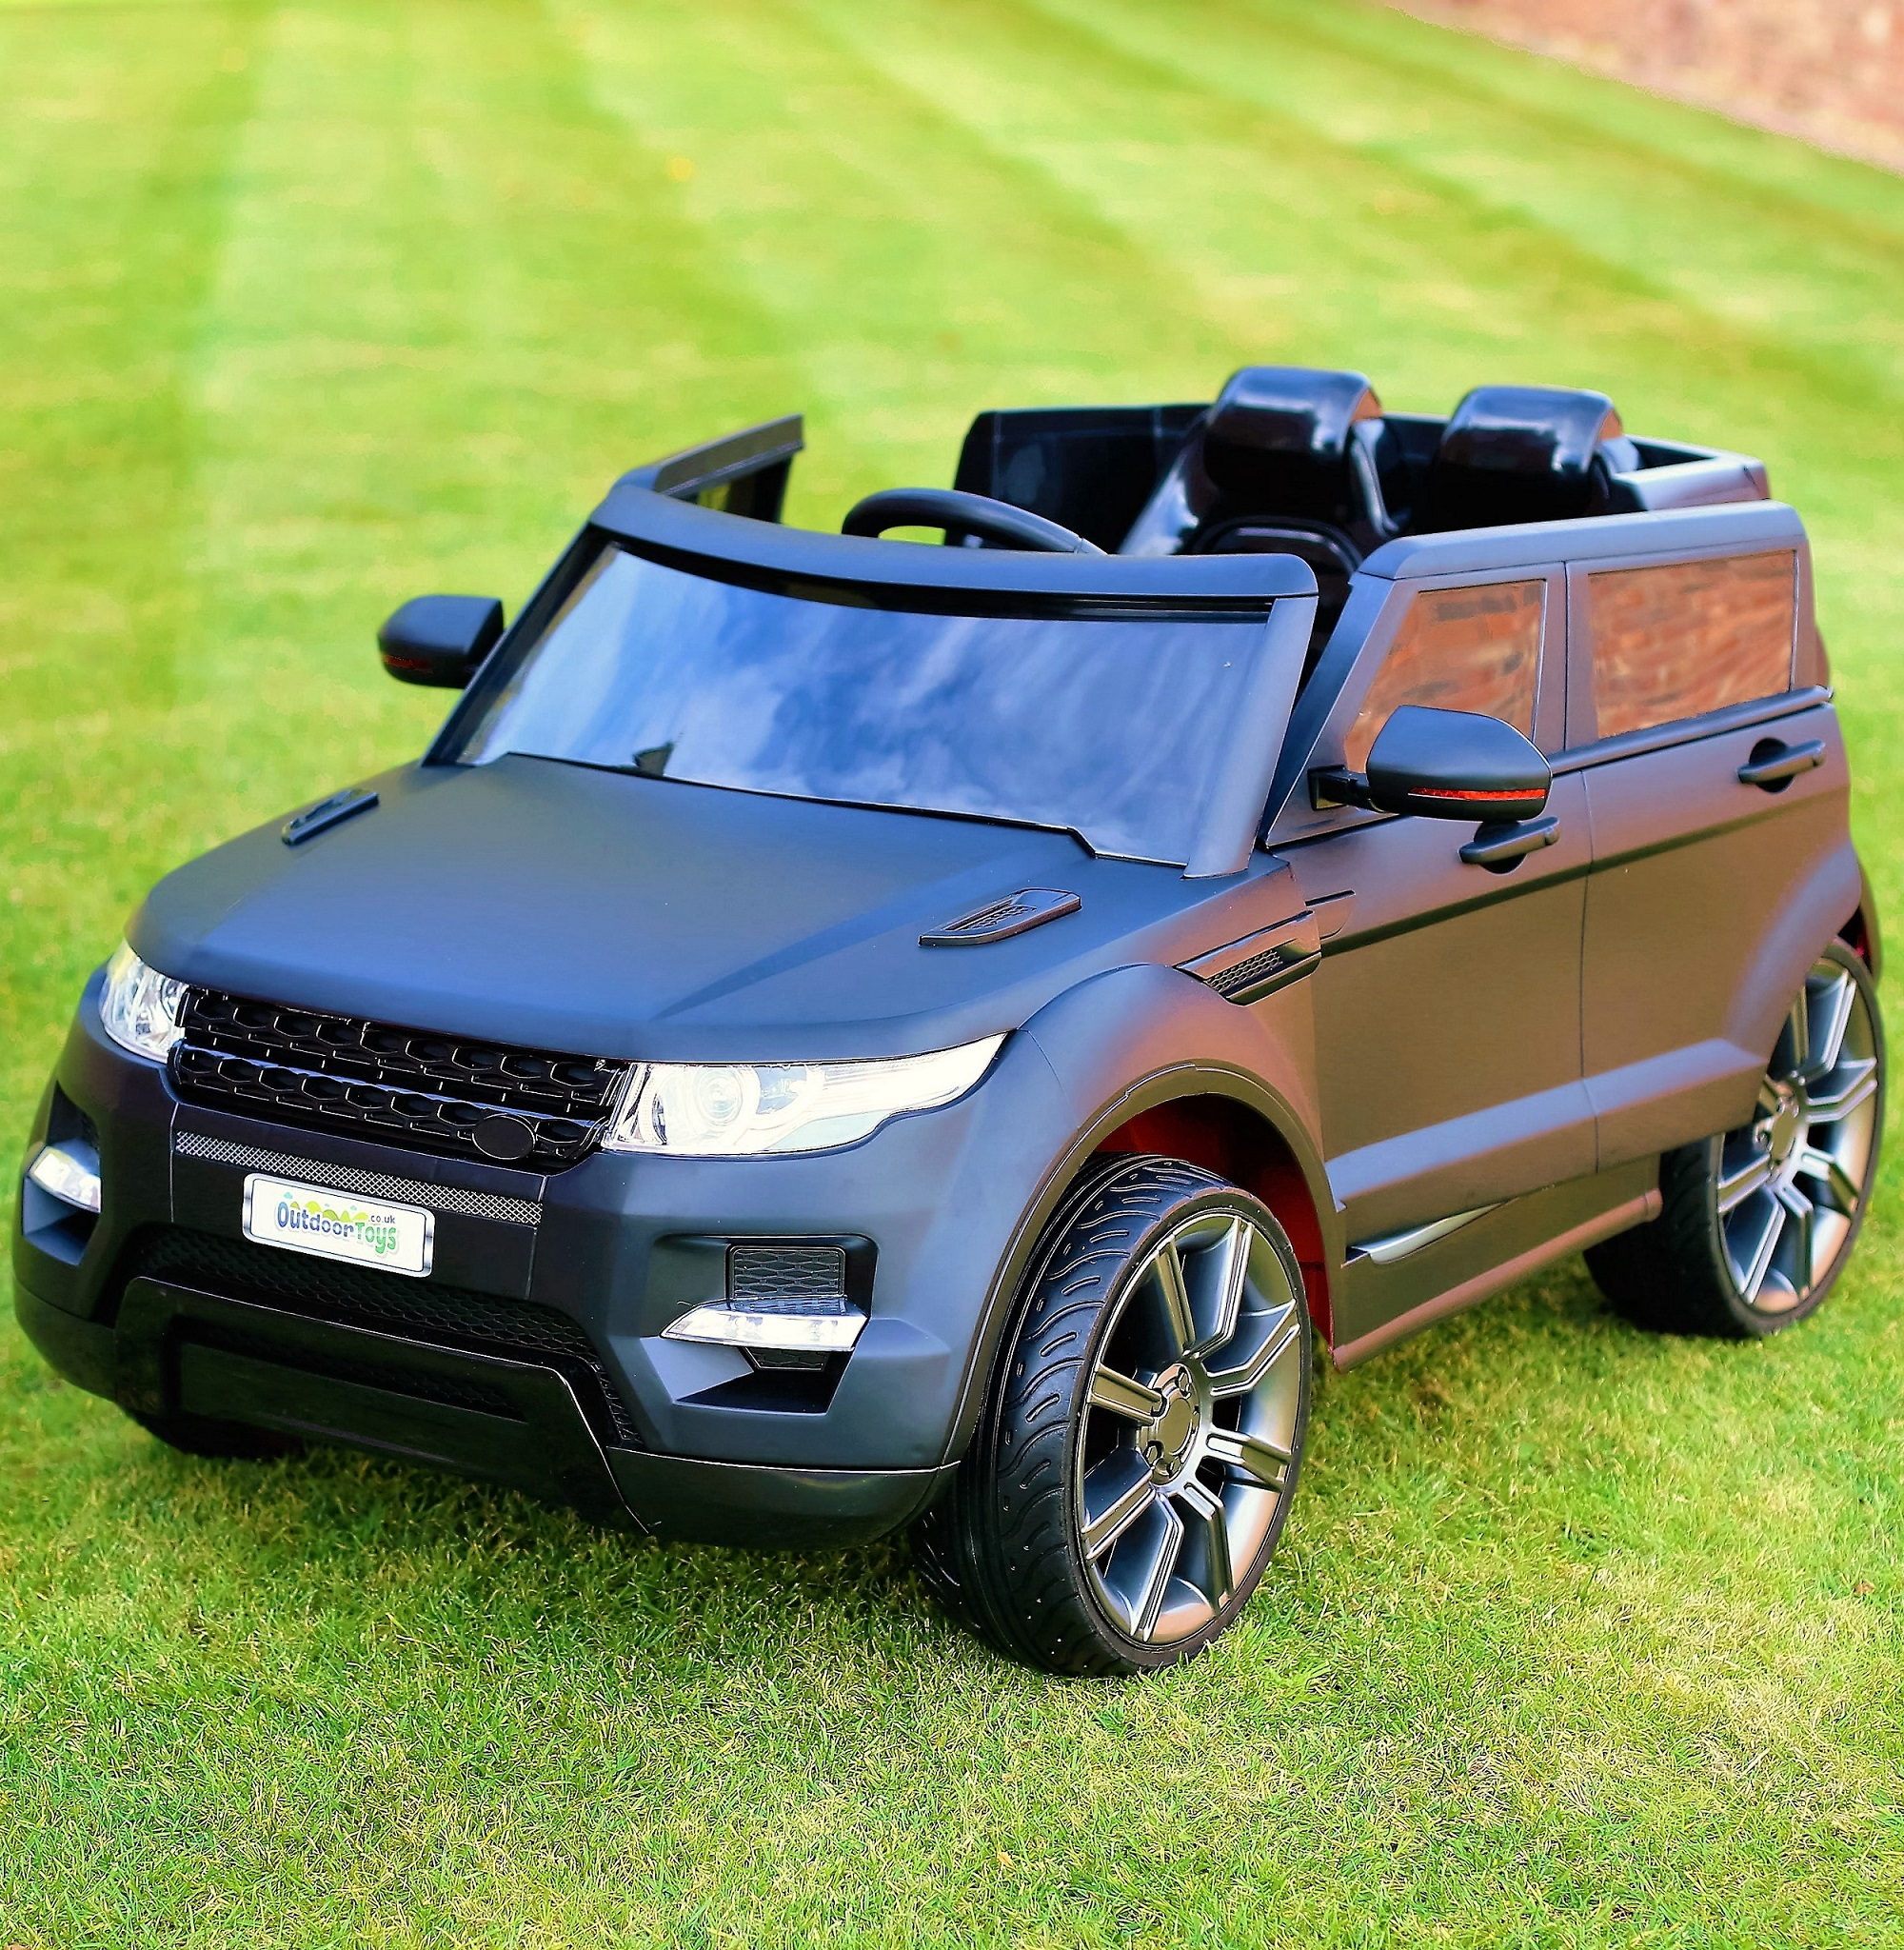 Maxi Range Rover HSE Sport Style 12v Electric Battery Ride